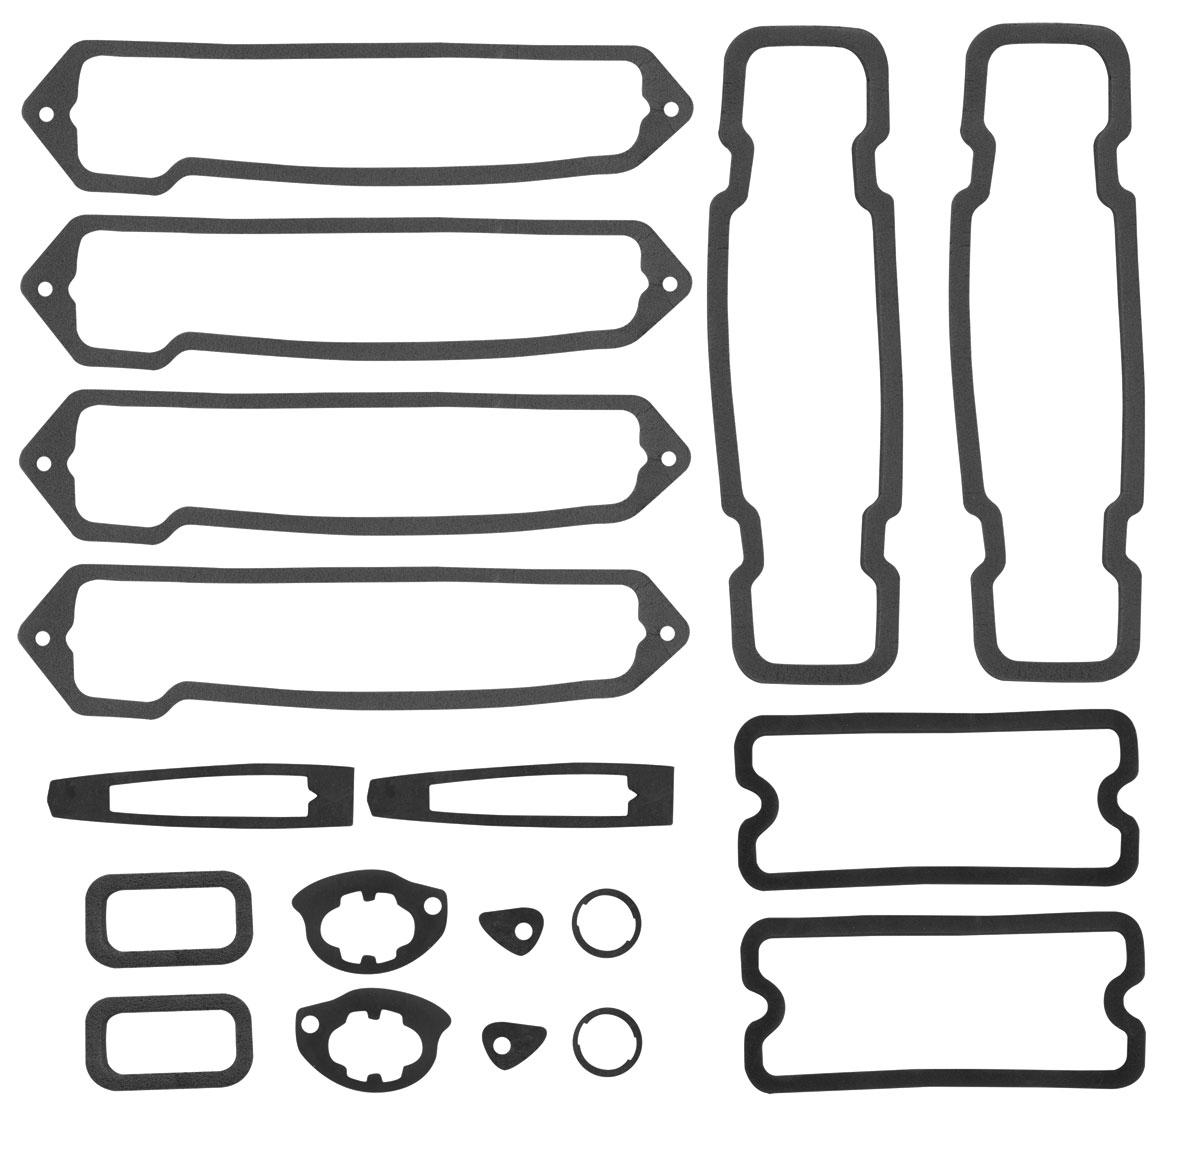 Monte Carlo Paint Seal Set Full Body By Restoparts